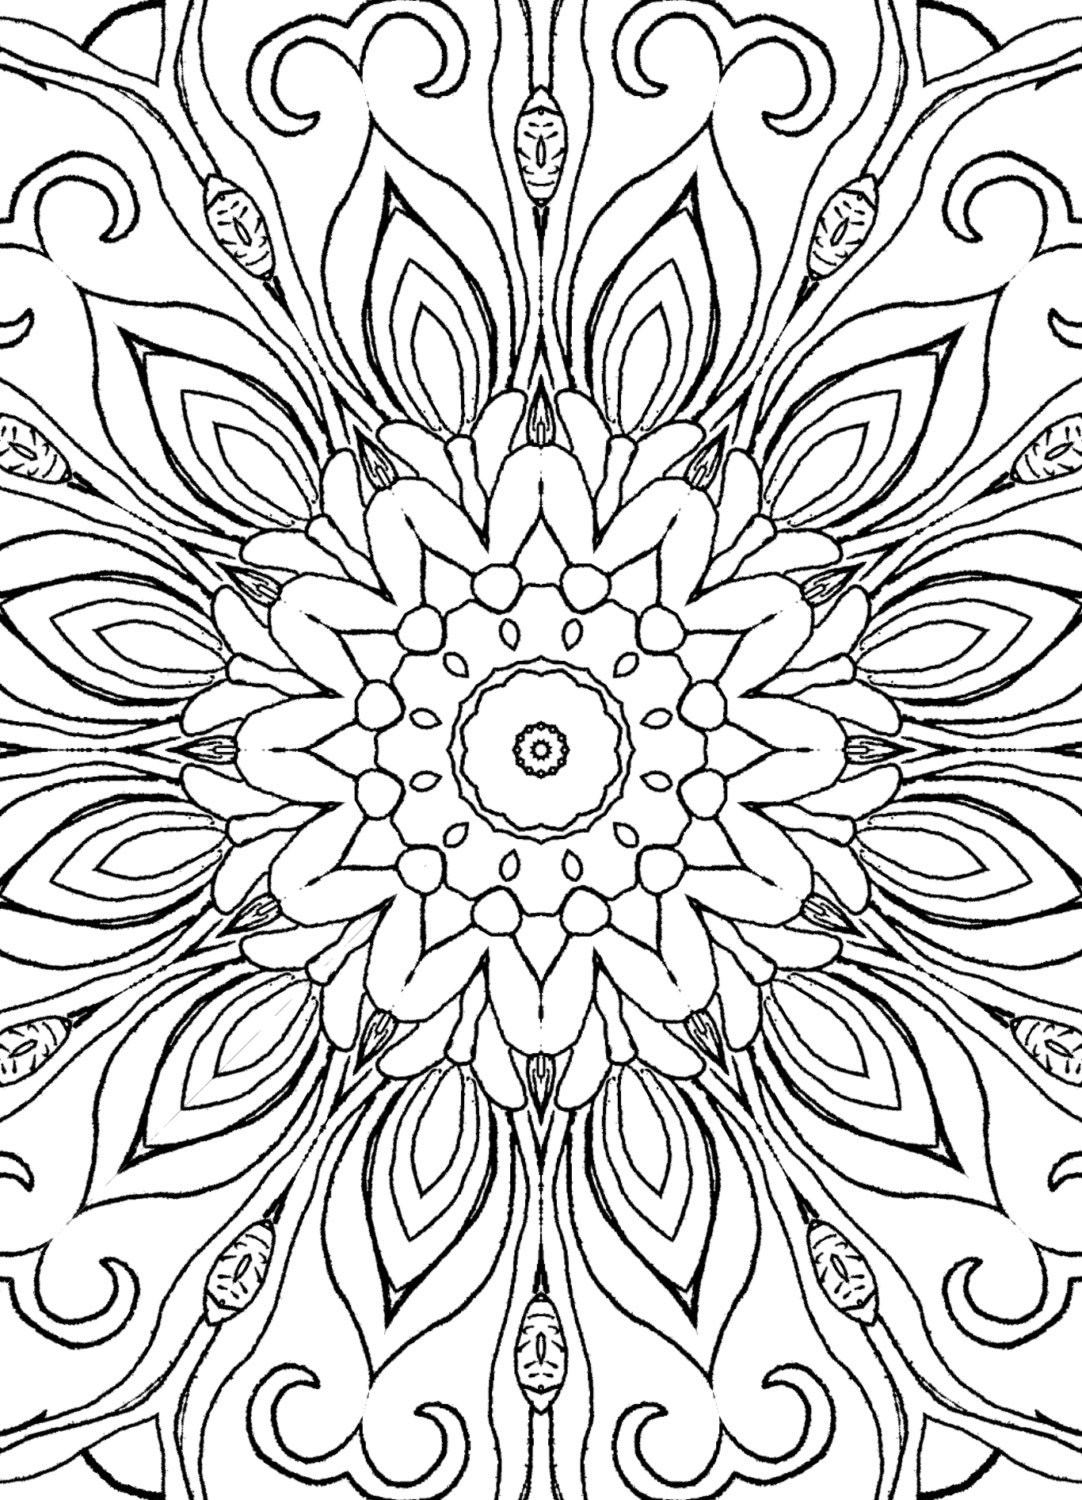 25 Coloring Pages Including Mandalas Geometric Designs Rug